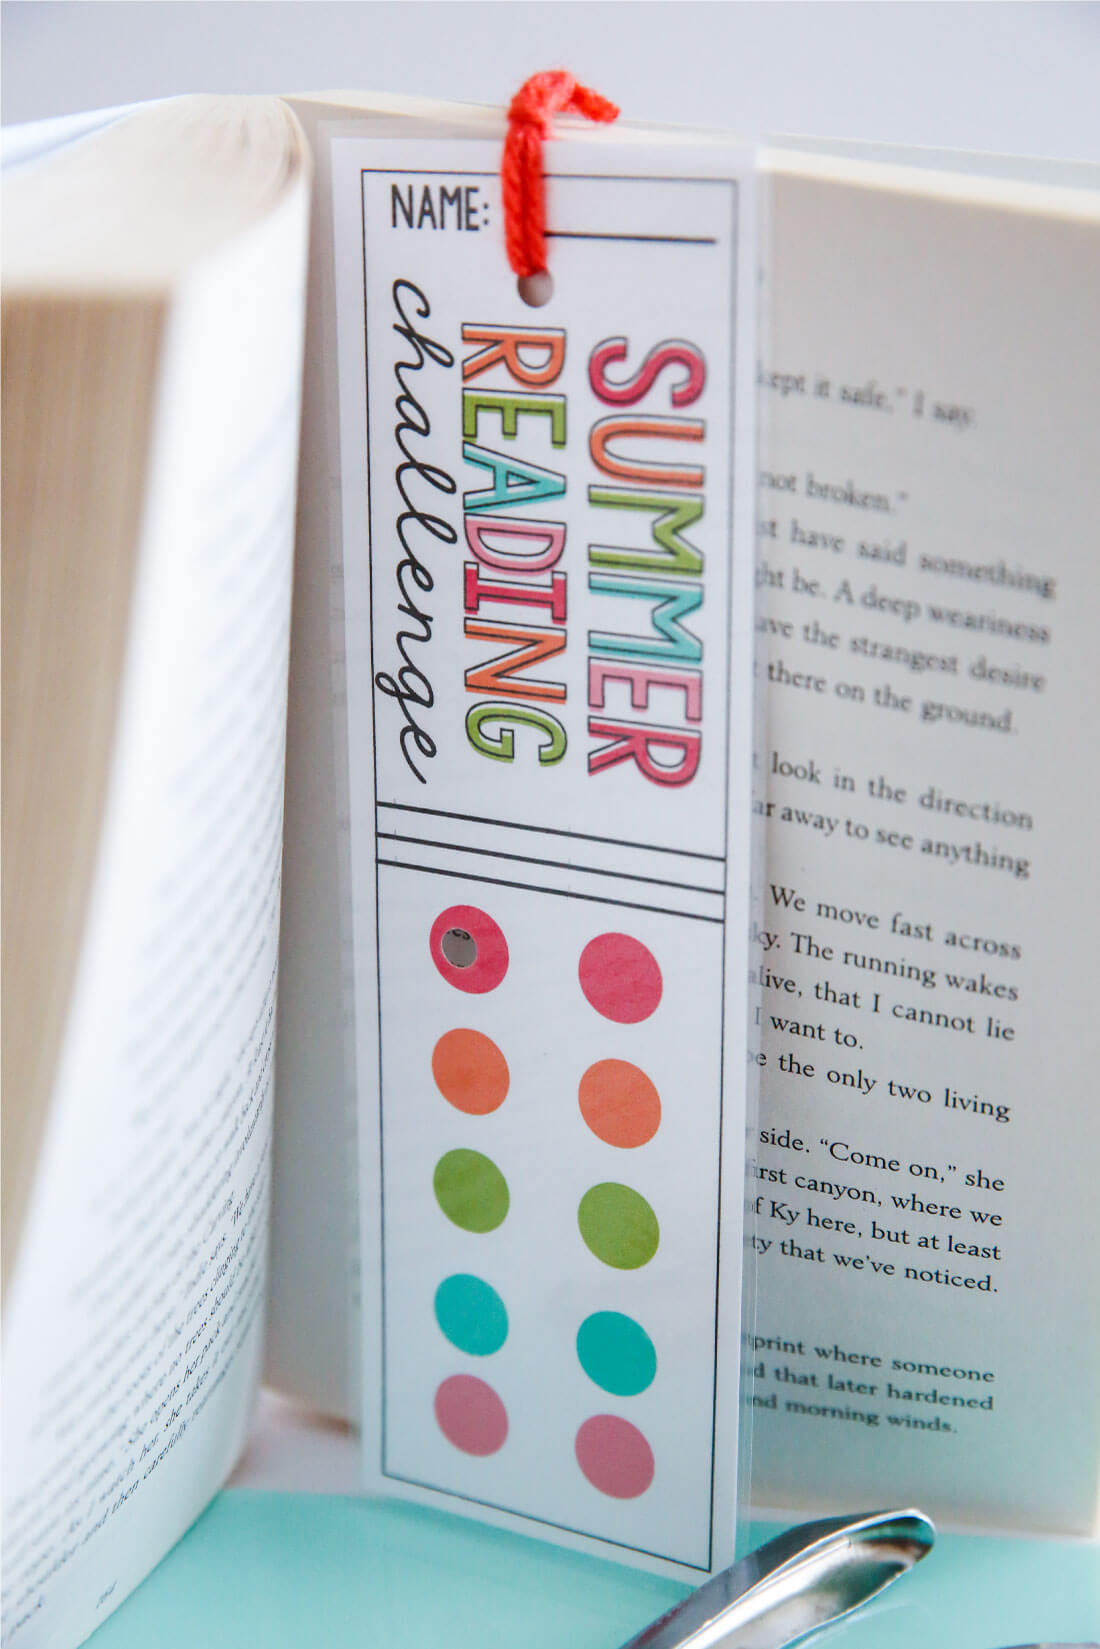 Printable Summer Reading Challenge Bookmarks - use these bookmarks to encourage reading this summer! www.thirthyhandmadedays.com